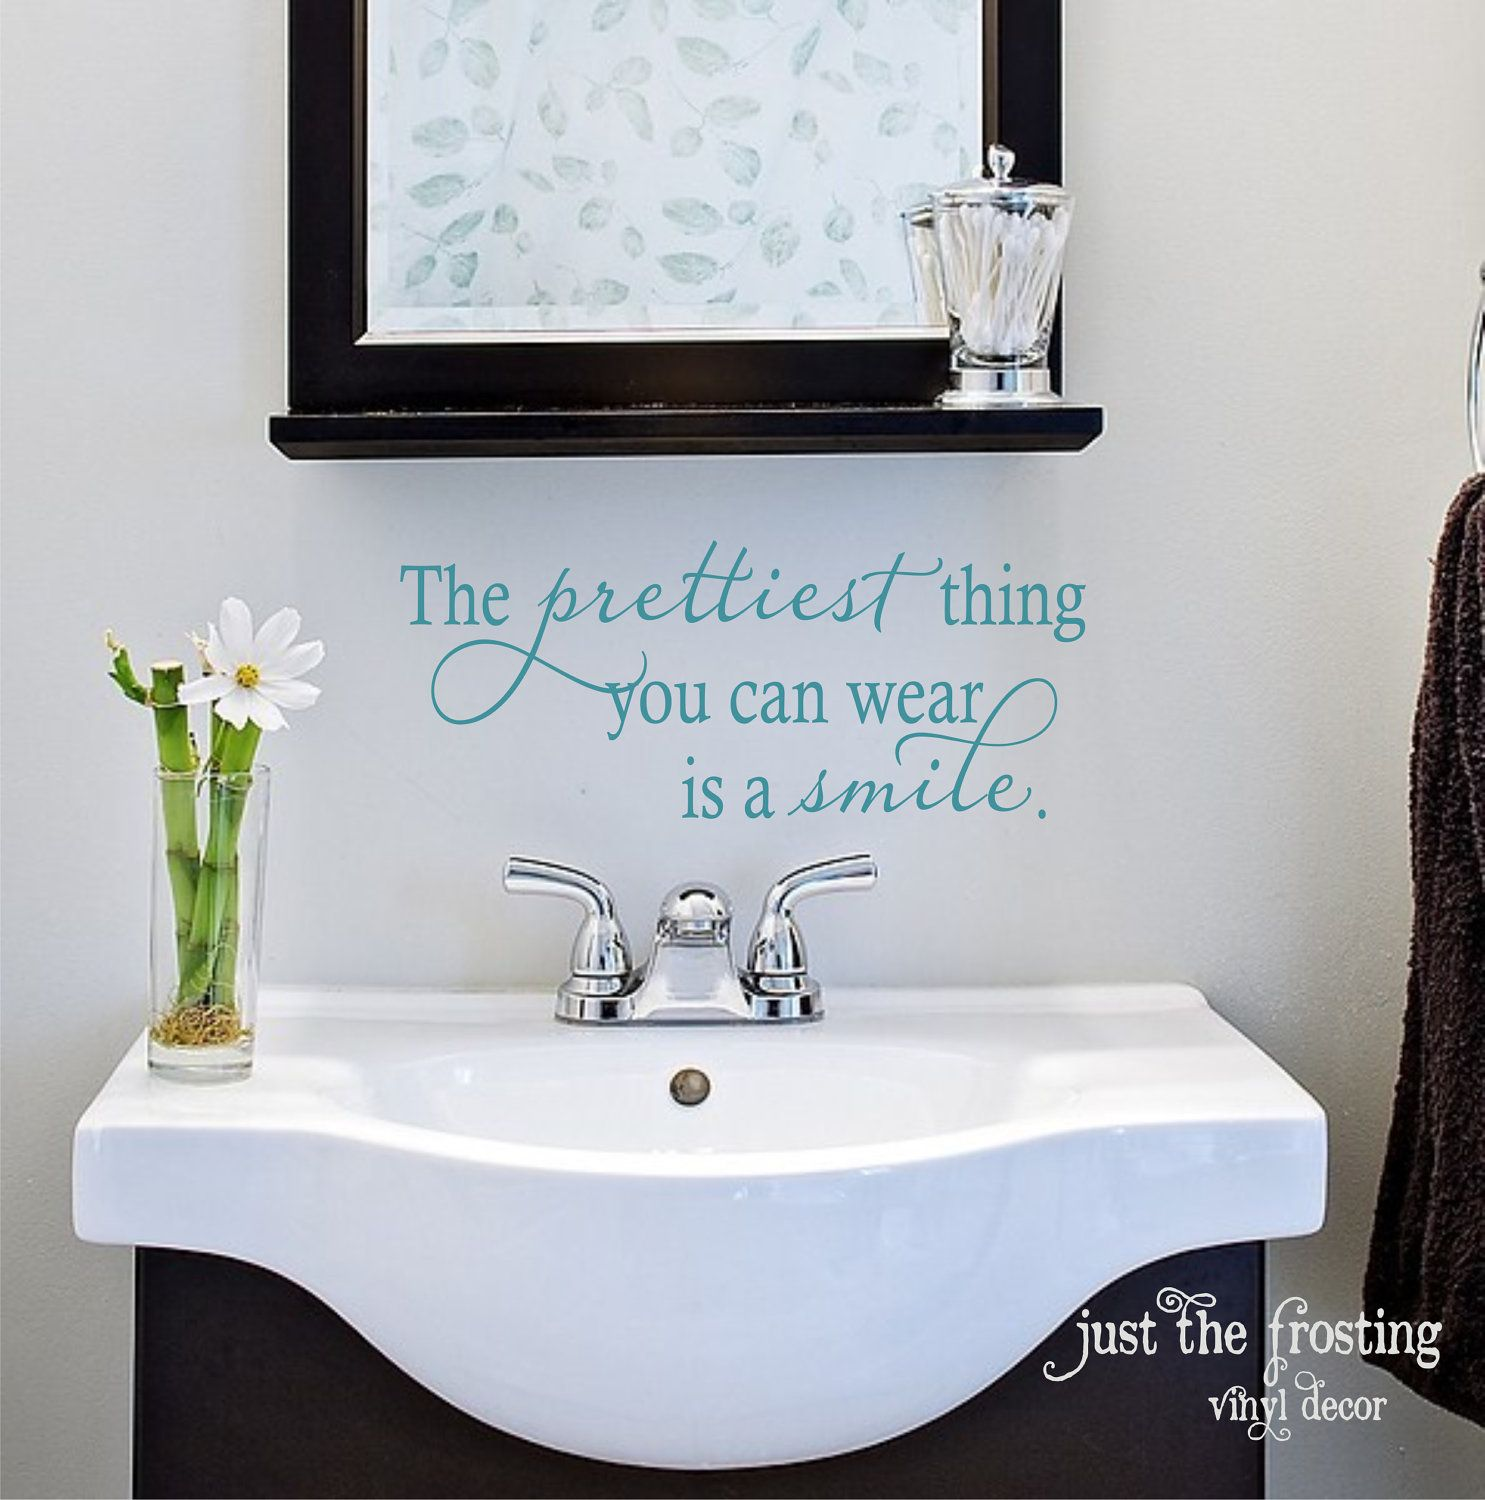 The prettiest thing you can wear is a smile by JustTheFrosting $14 00